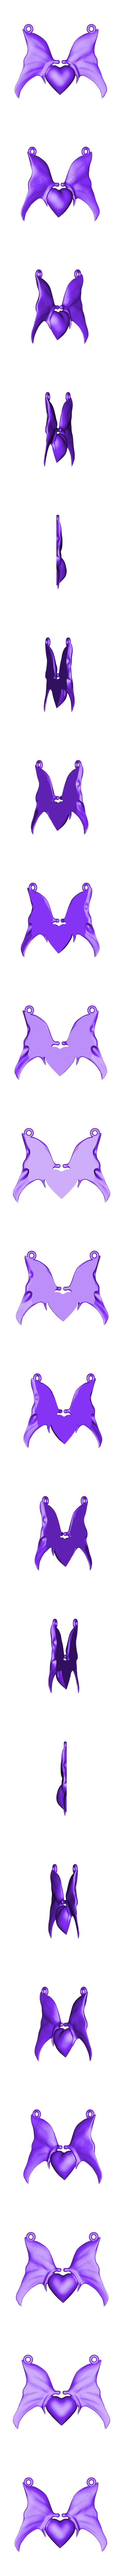 Heart butterfly stl.stl Download STL file Heart with butterfly pendant • Object to 3D print, Majs84